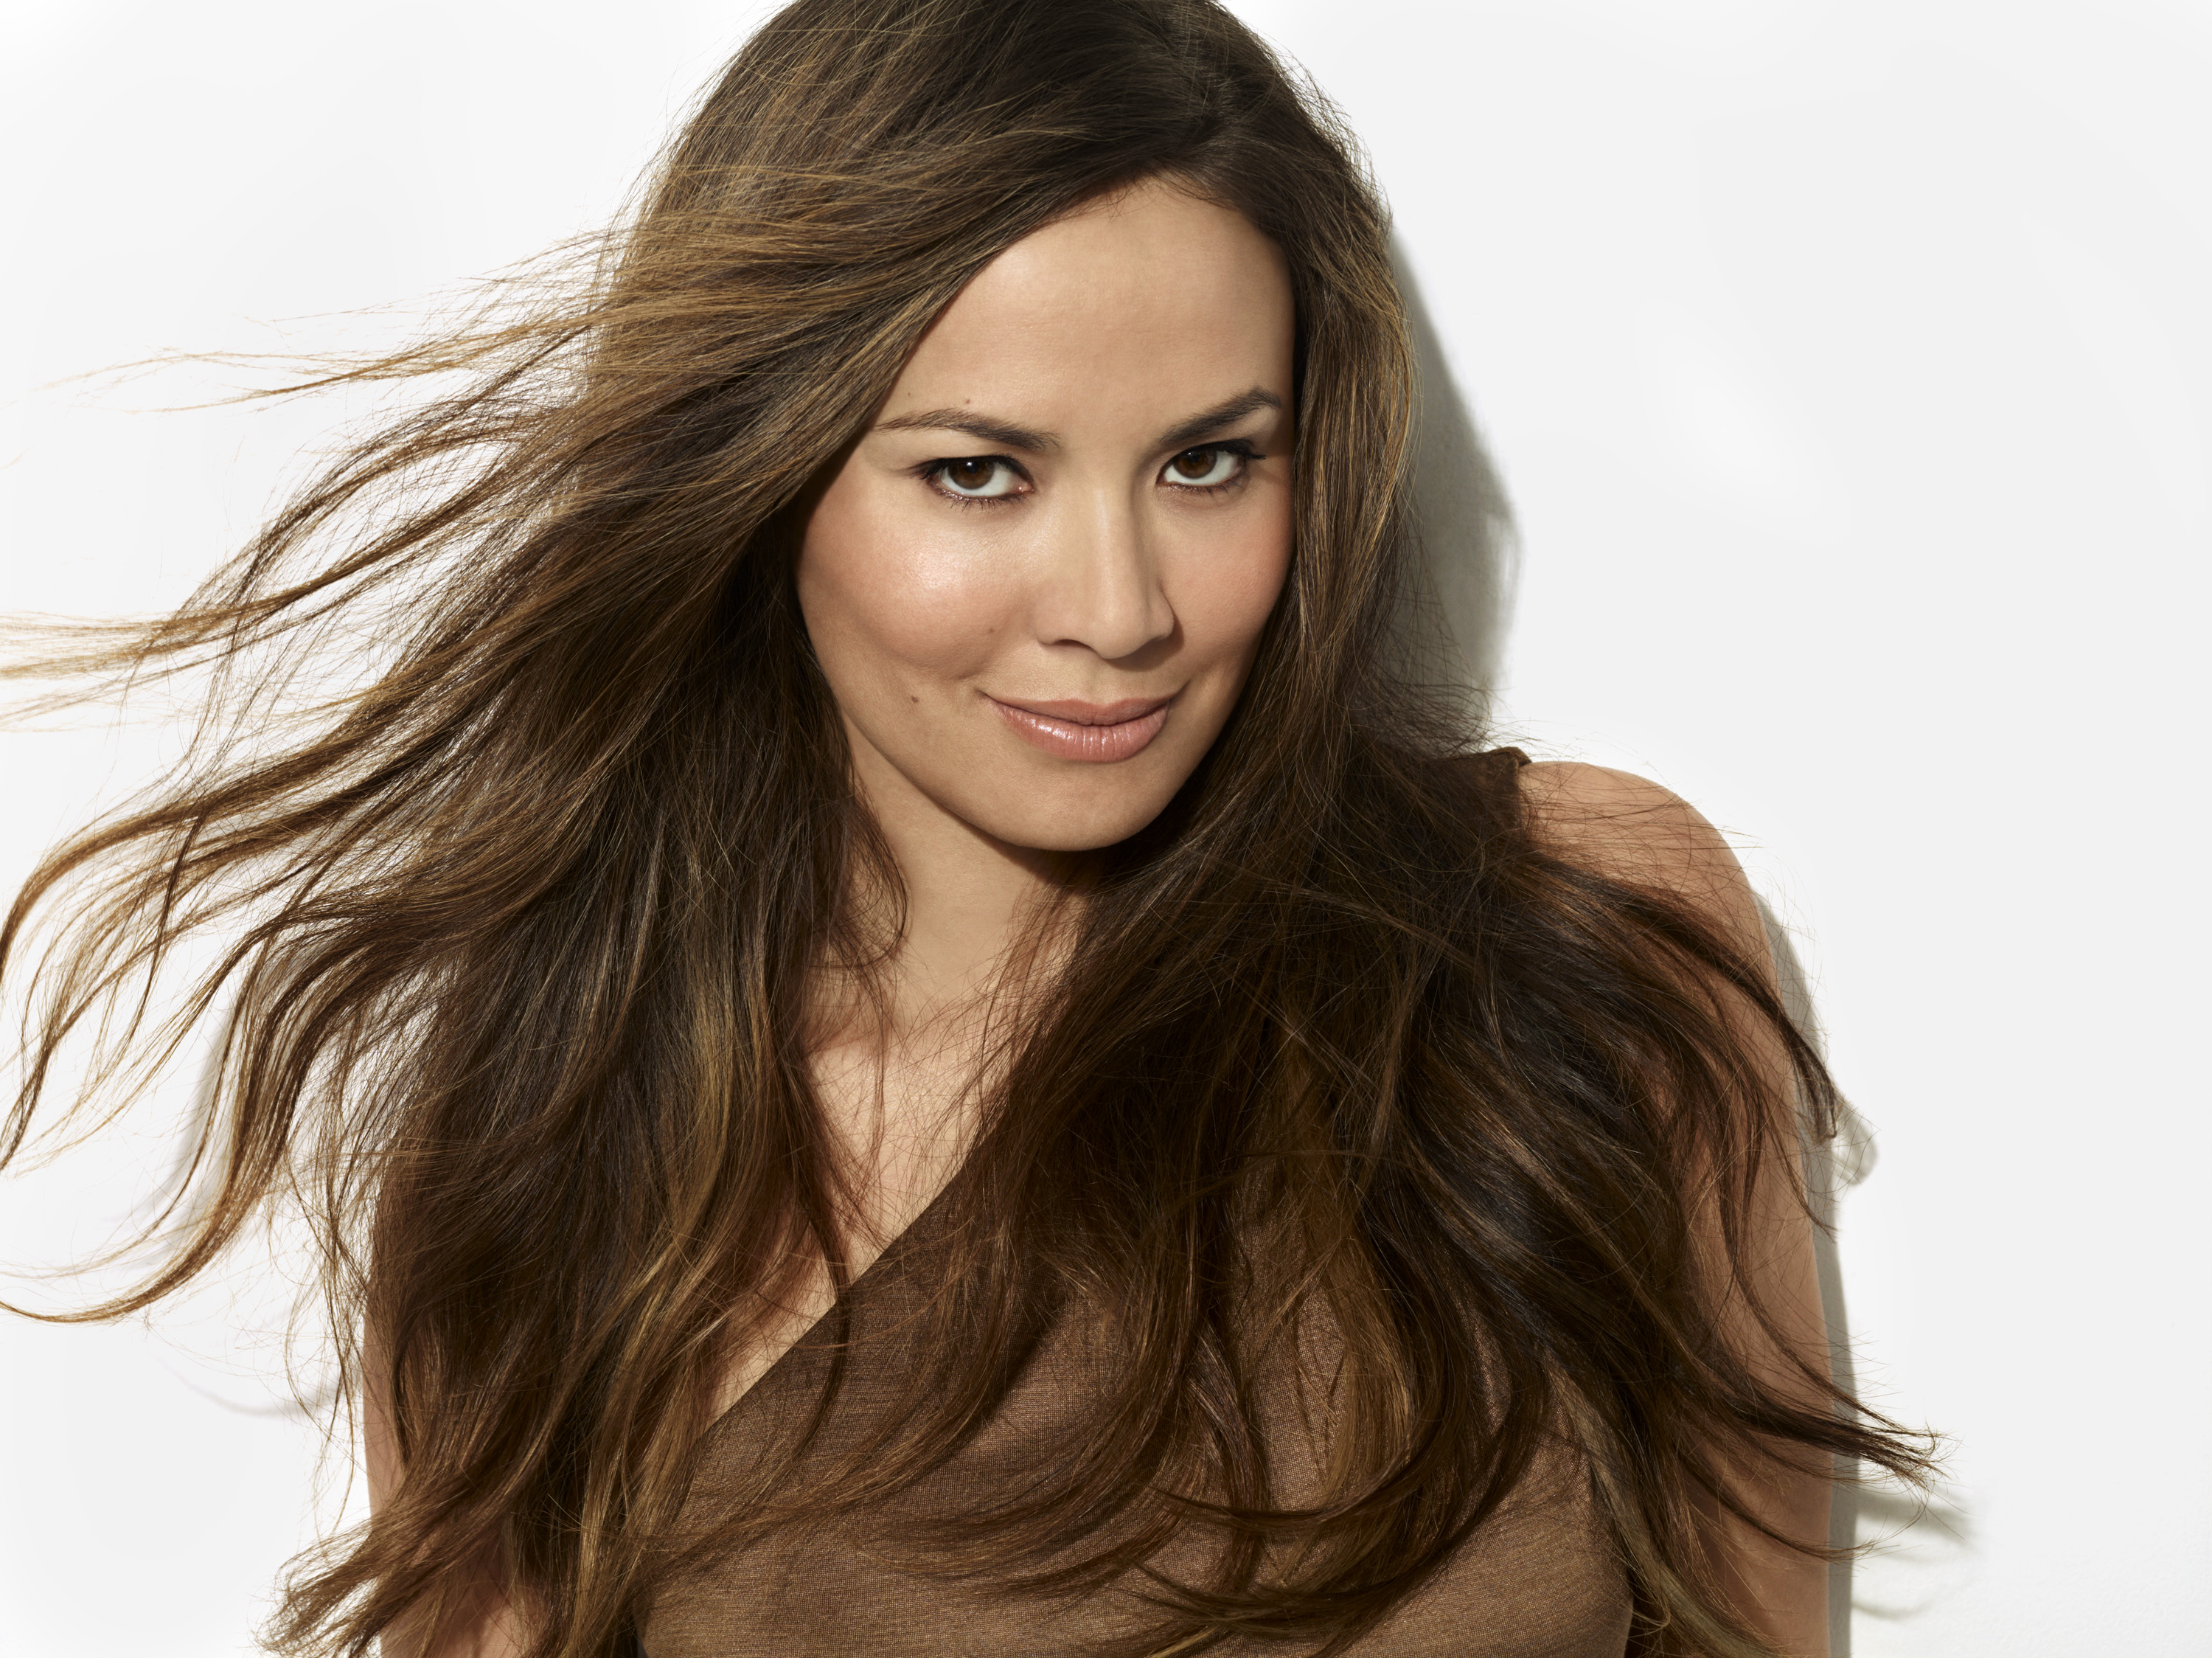 Falling Skies Wallpaper Hd Moon Bloodgood Photo 29 Of 34 Pics Wallpaper Photo